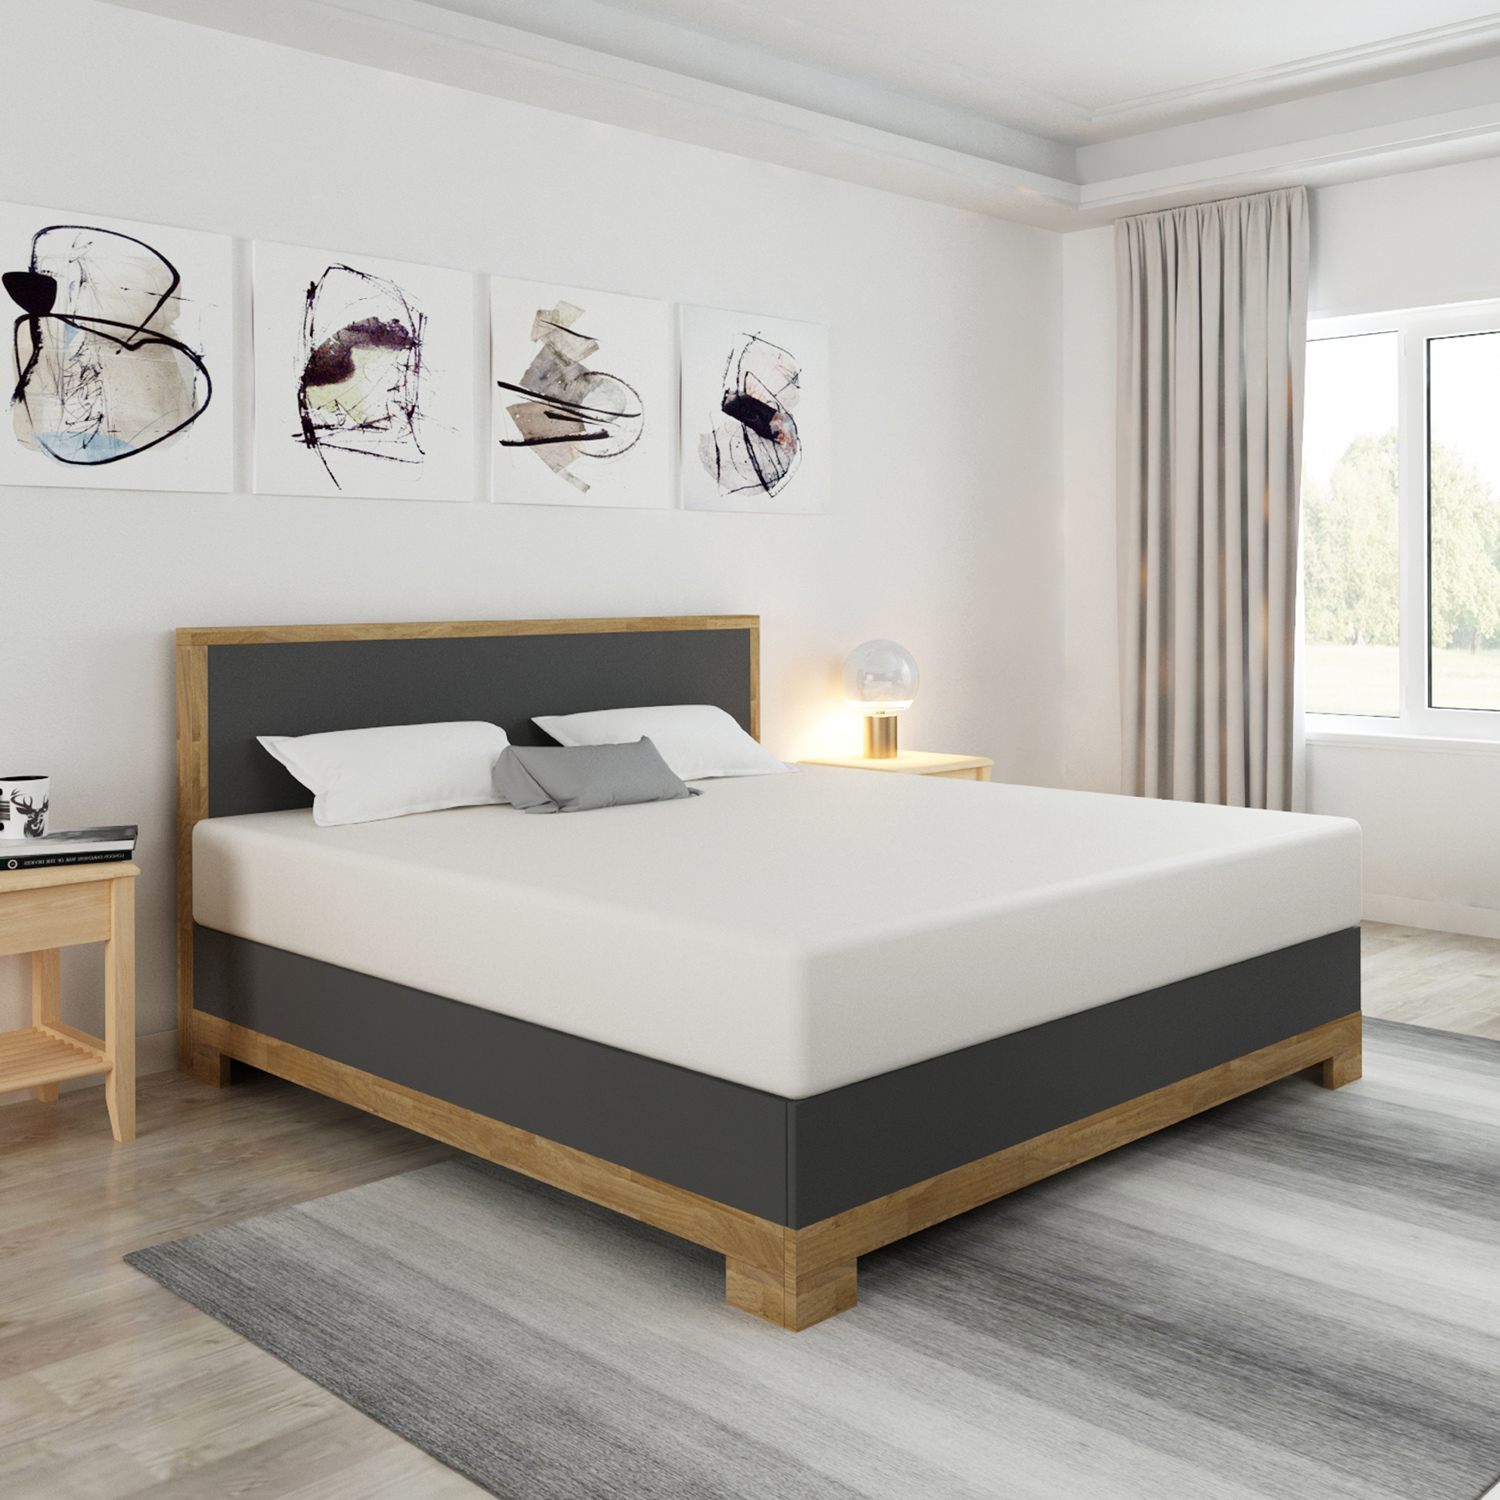 bellvita silverline wasserbett kopenhagen mit edlem echtholz bettrahmen bellvita wasserbetten. Black Bedroom Furniture Sets. Home Design Ideas